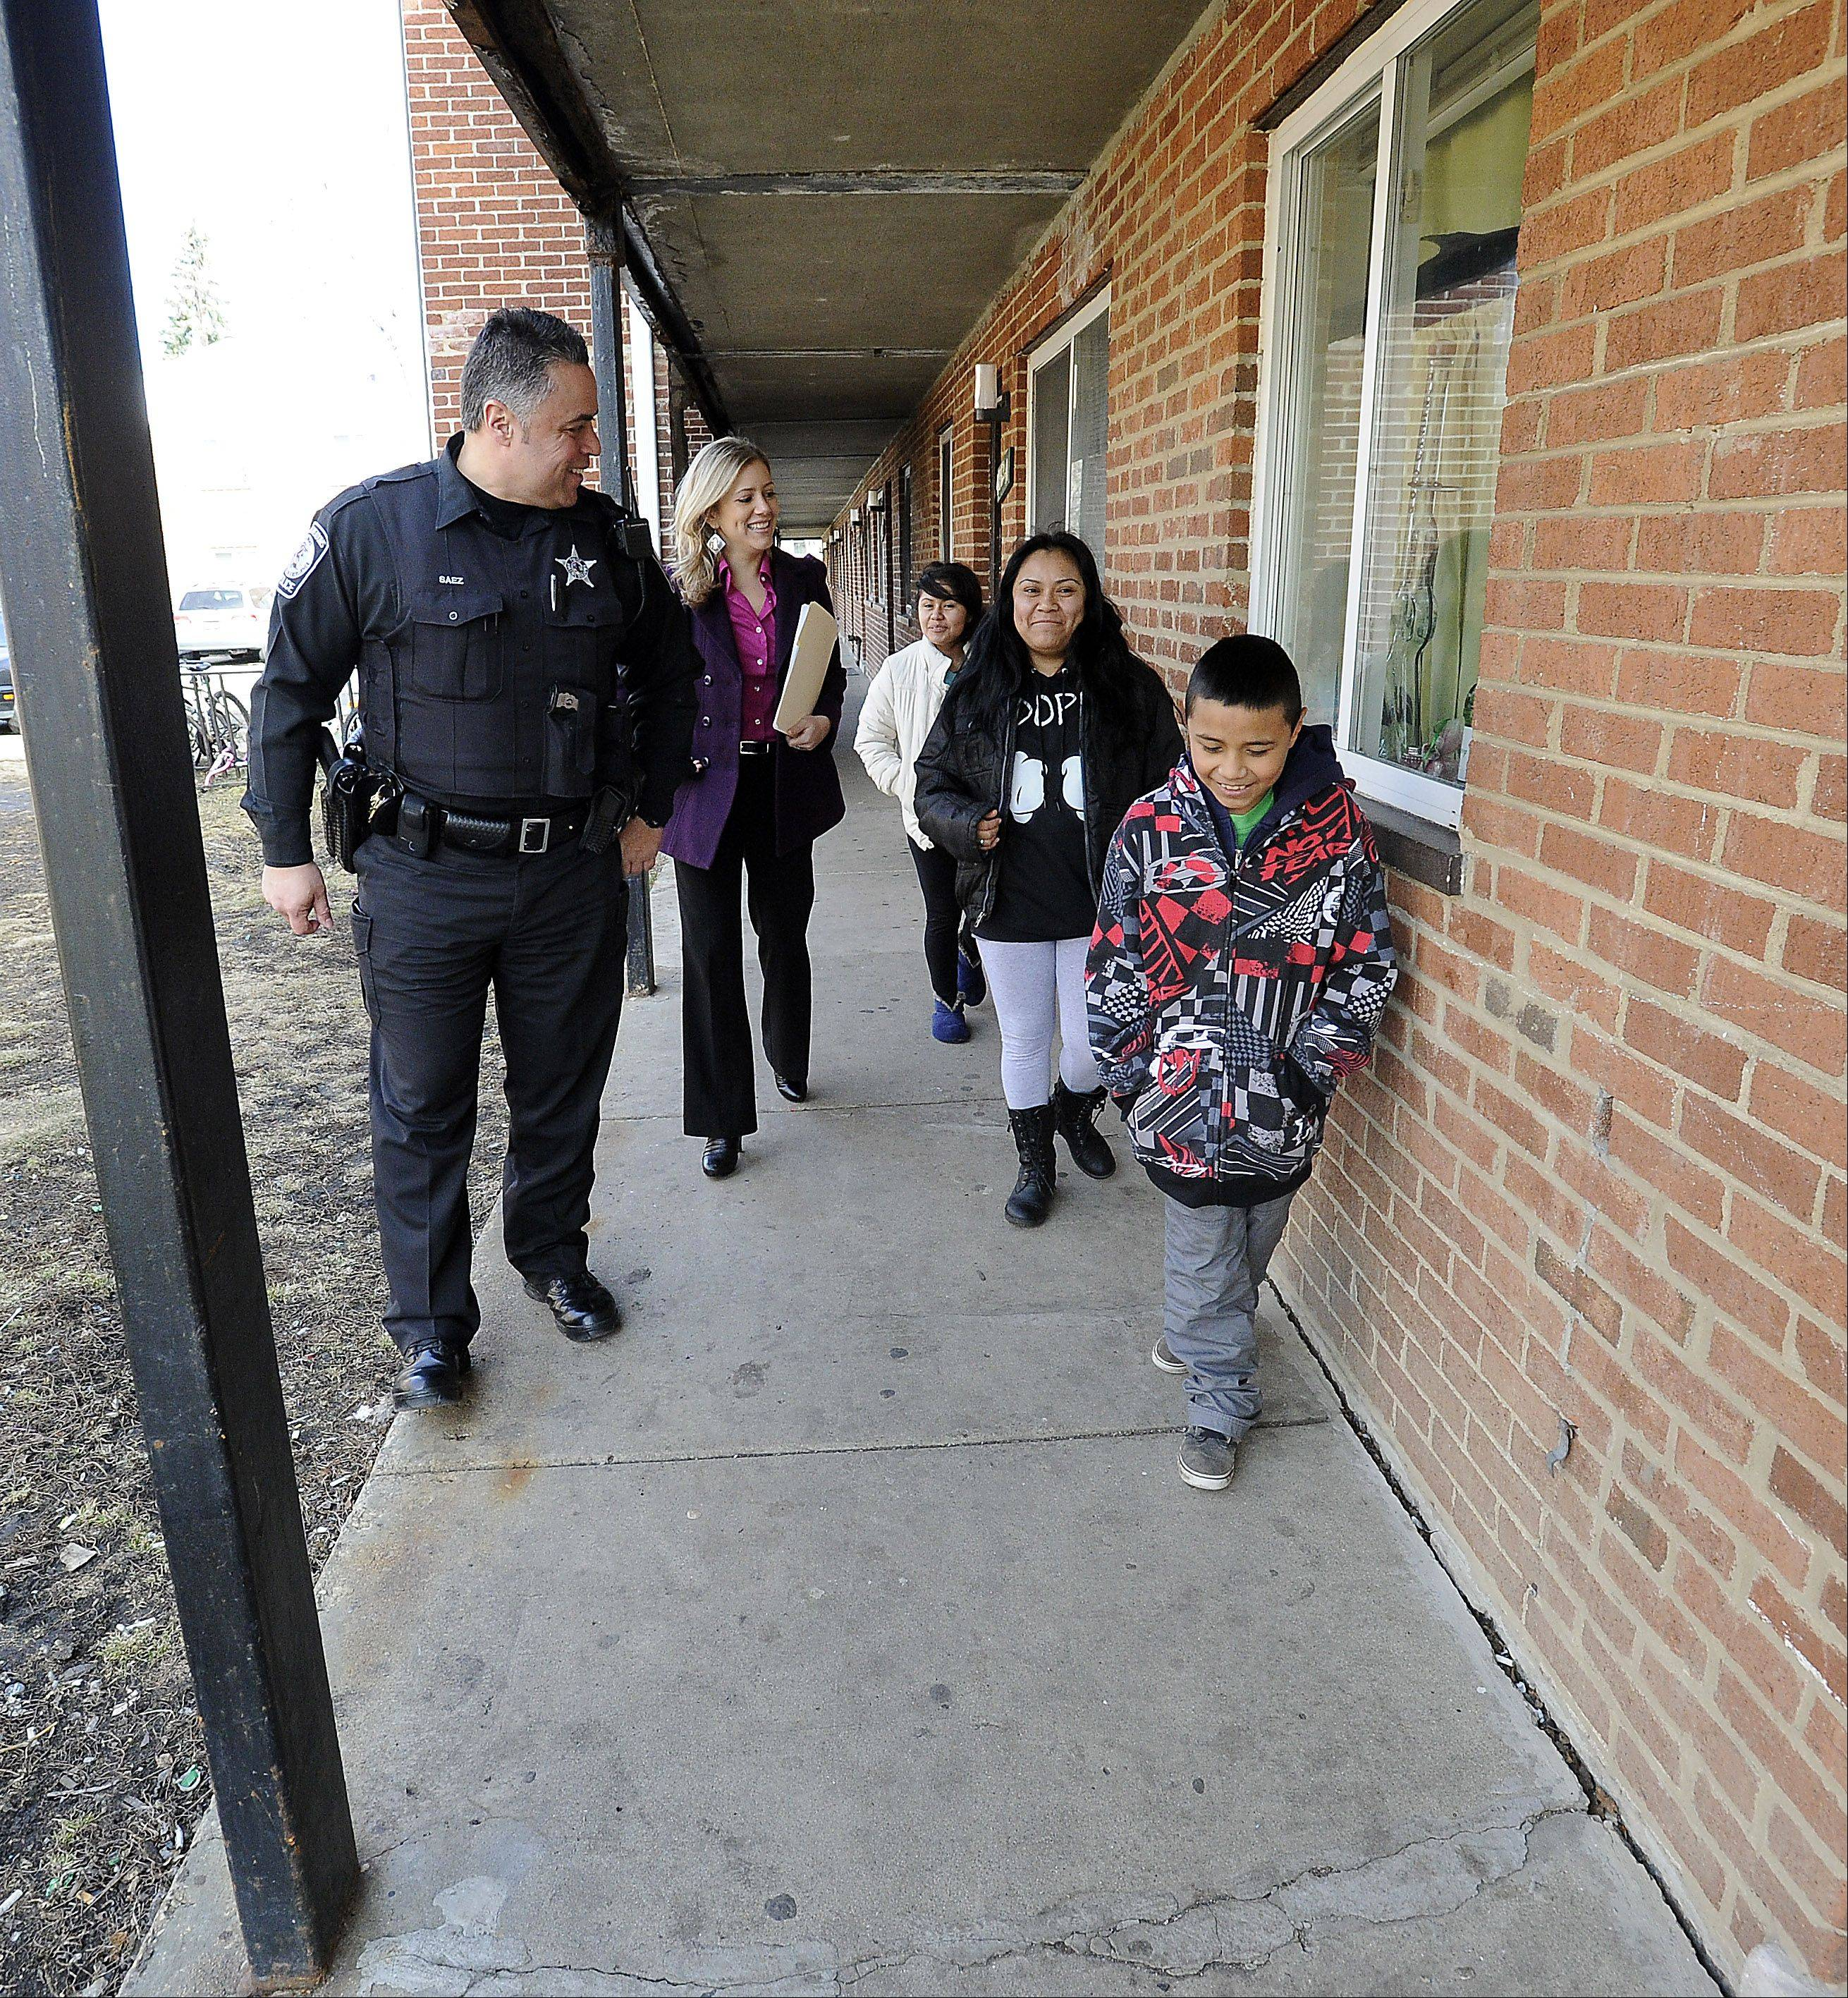 Officer Carlos Saez and social worker Natalia Mercado talk with Juana Mendoza and her children Fatima Osorio, 14, and Jessie Osorio, 10, when the family that lives nearby visited East Park Apartments.